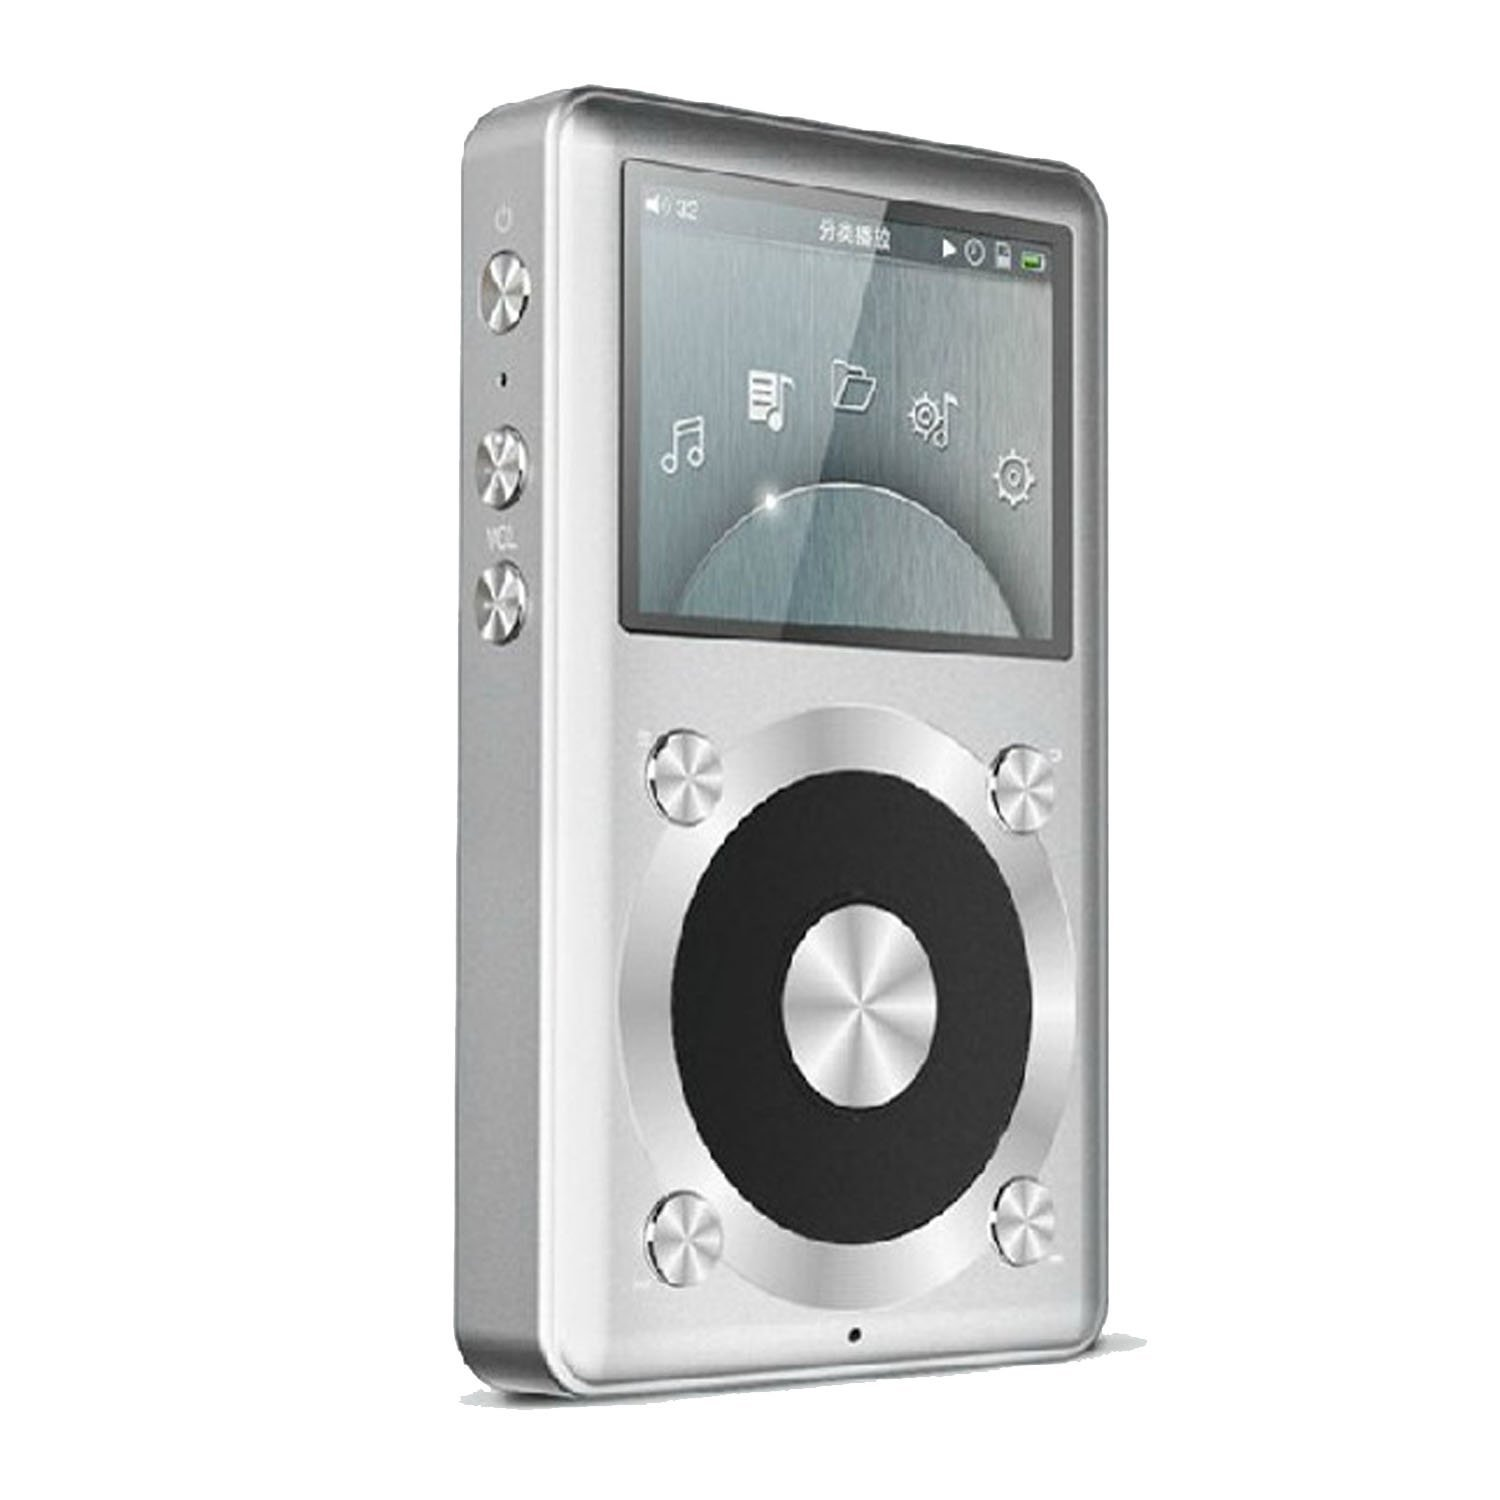 FiiO X1 Review : Pros And Cons